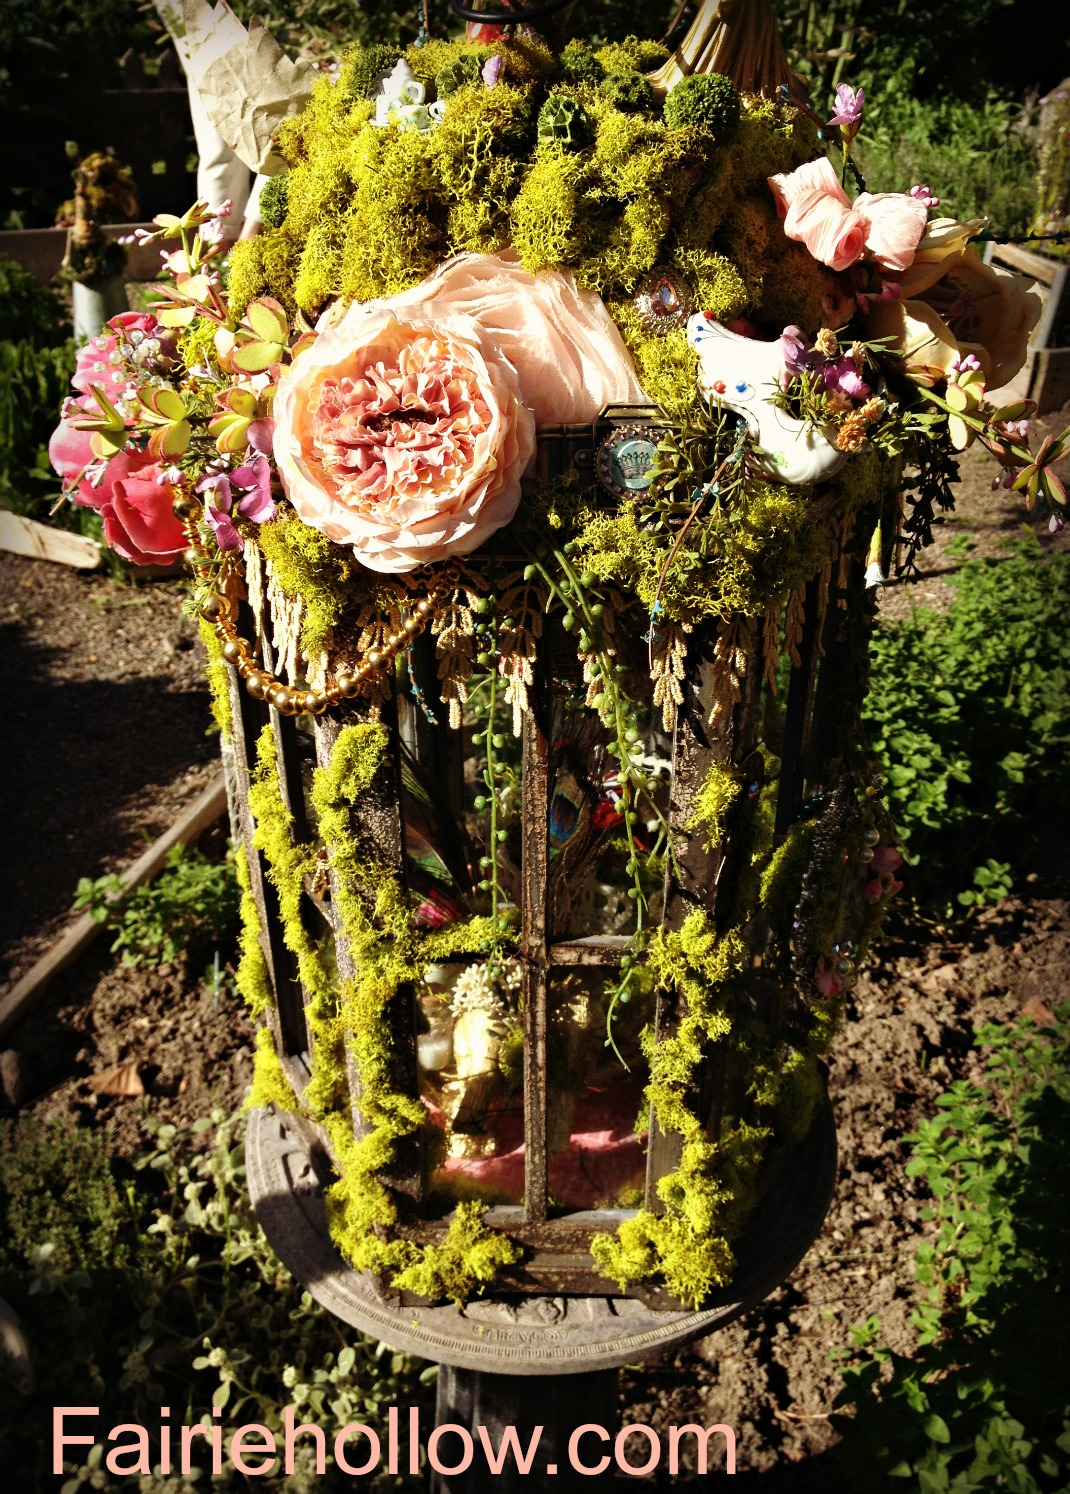 Fairie garden party Rose House moss birdcage | fairiehollow.com